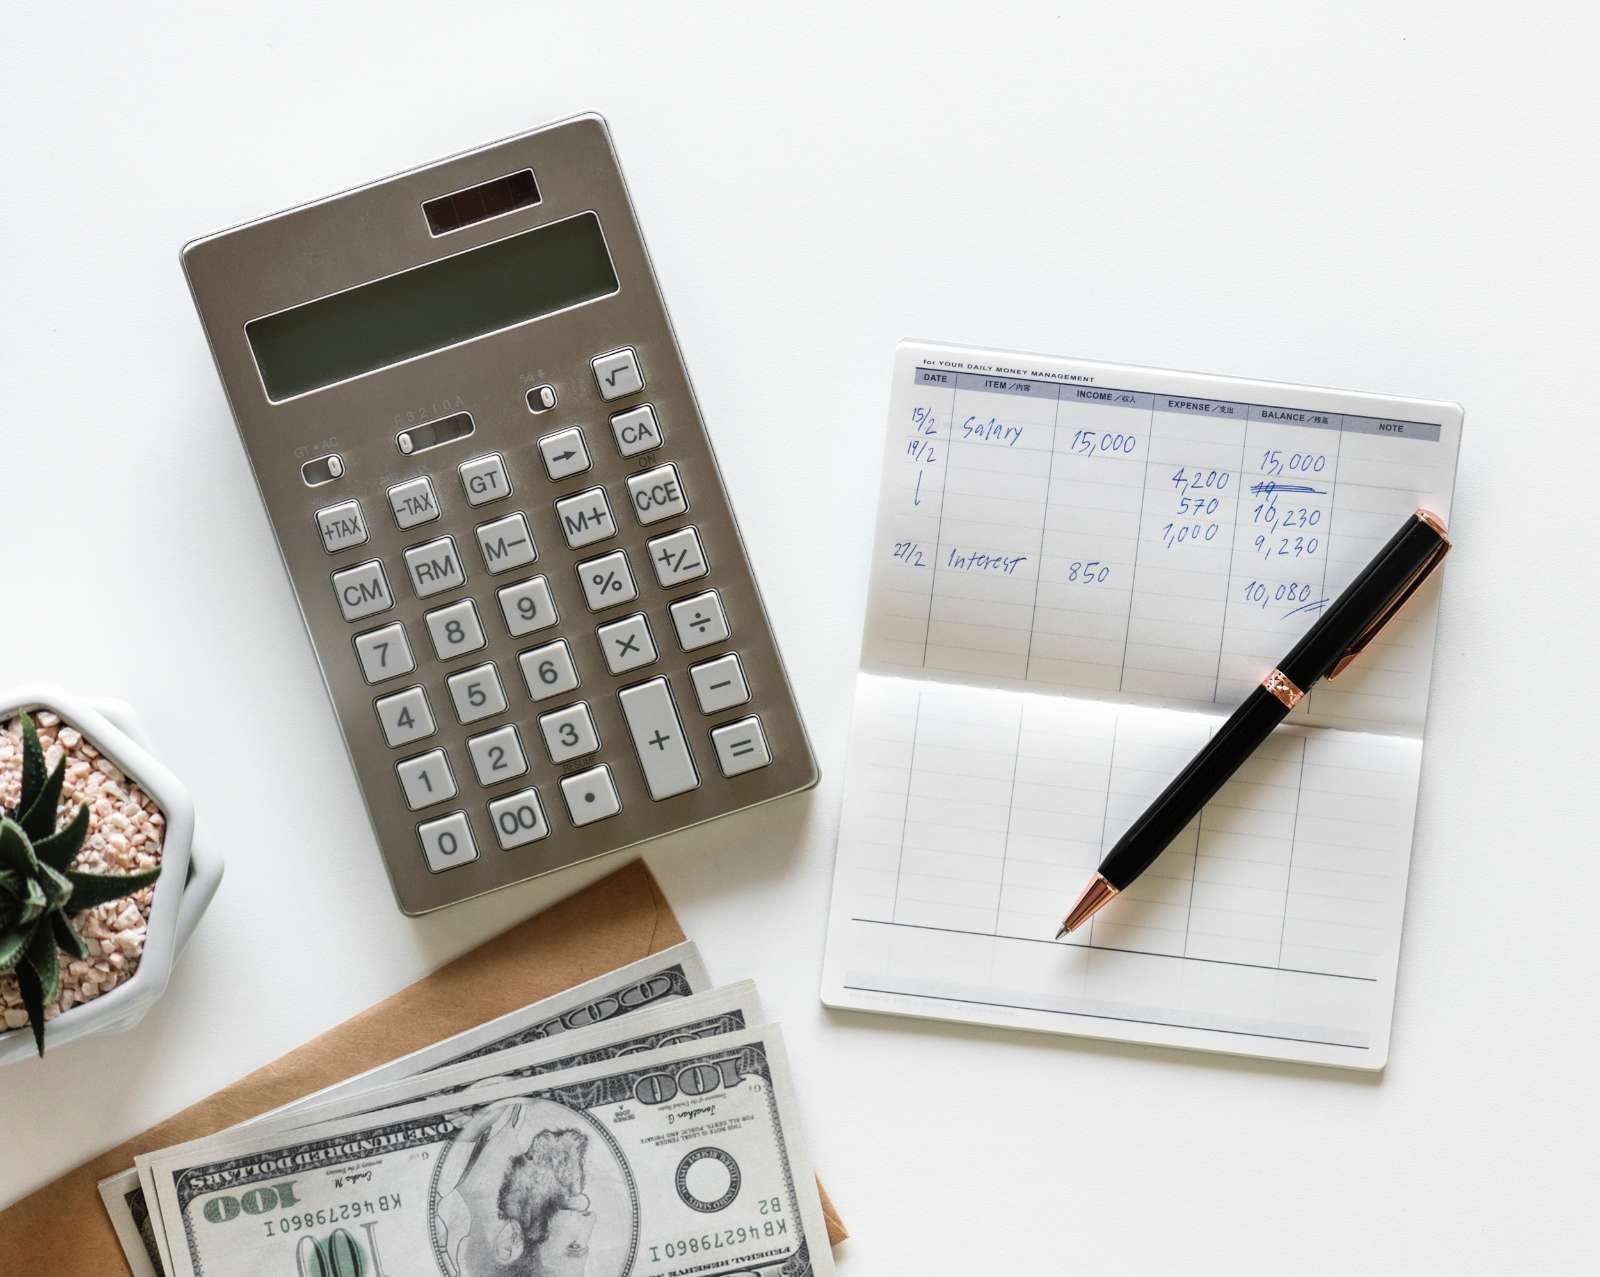 How Does Accounts Payable Automation Improve Invoice Processing